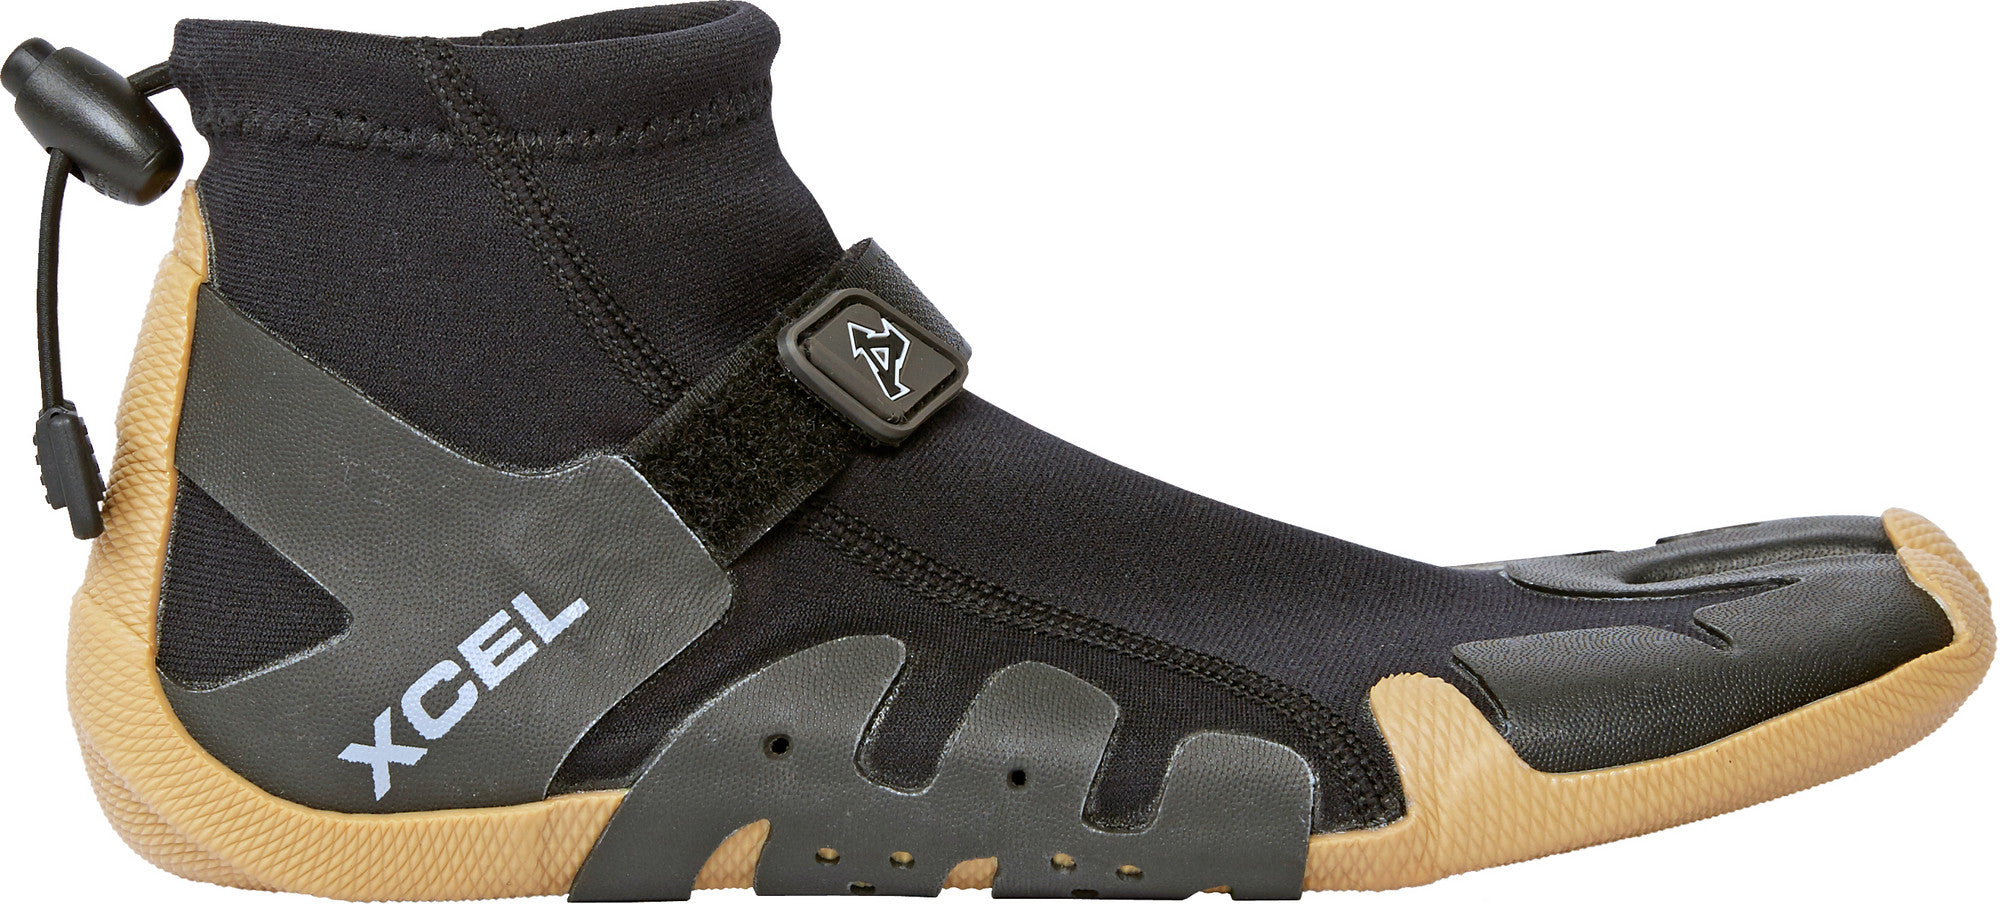 Xcel Infiniti Split Toe Reef Boot 1mm - Board Store XcelBoots